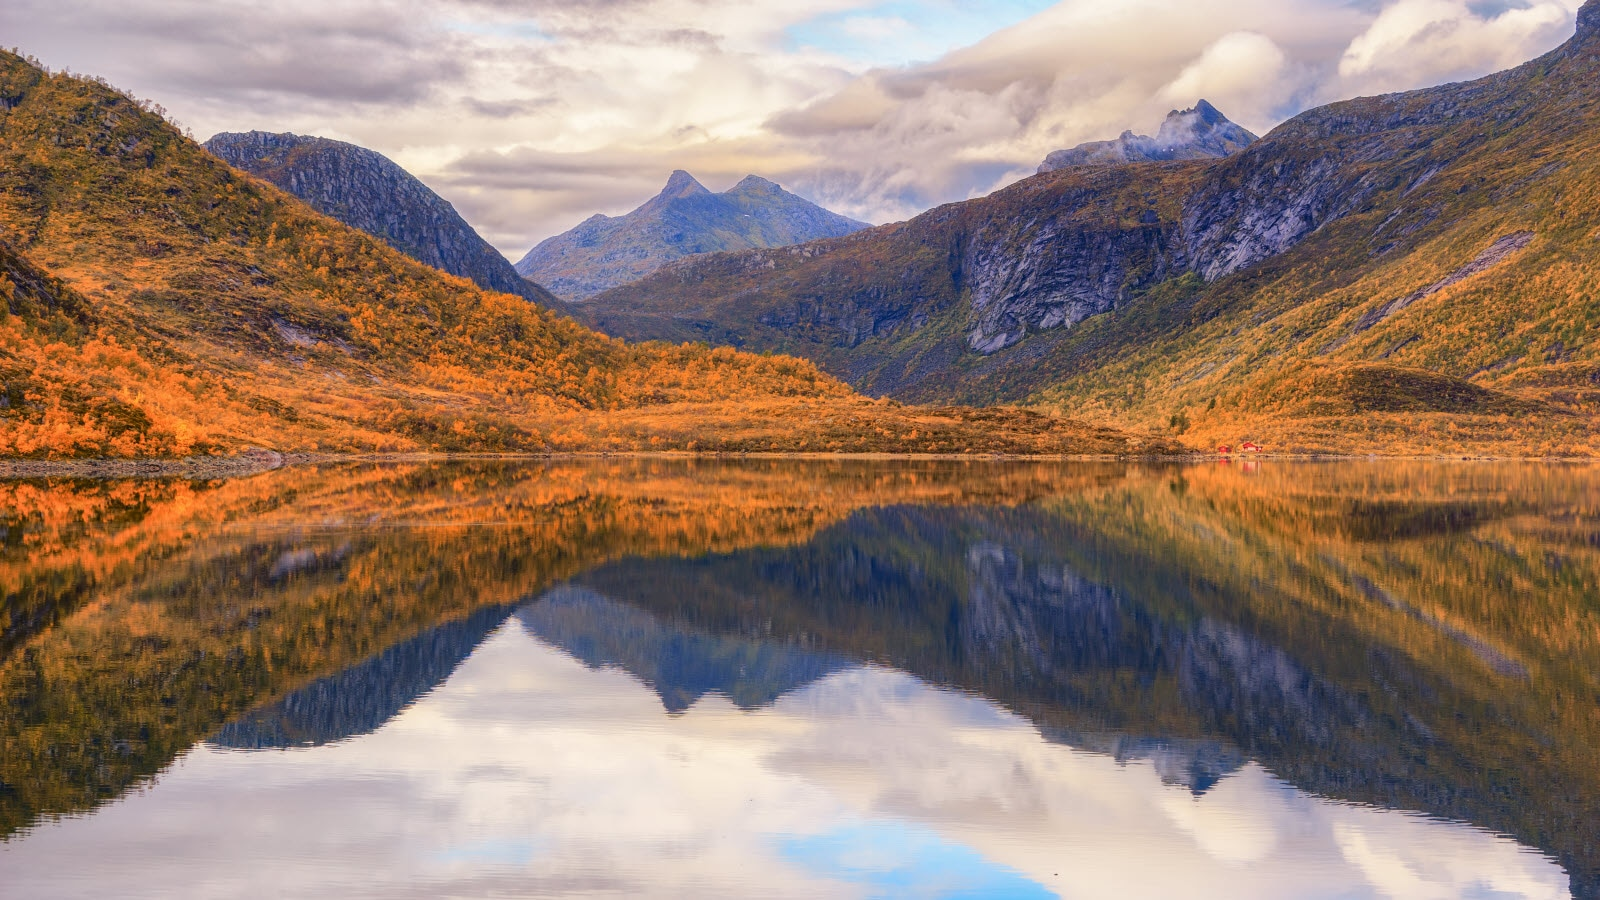 Lofoten lake a day in autumn